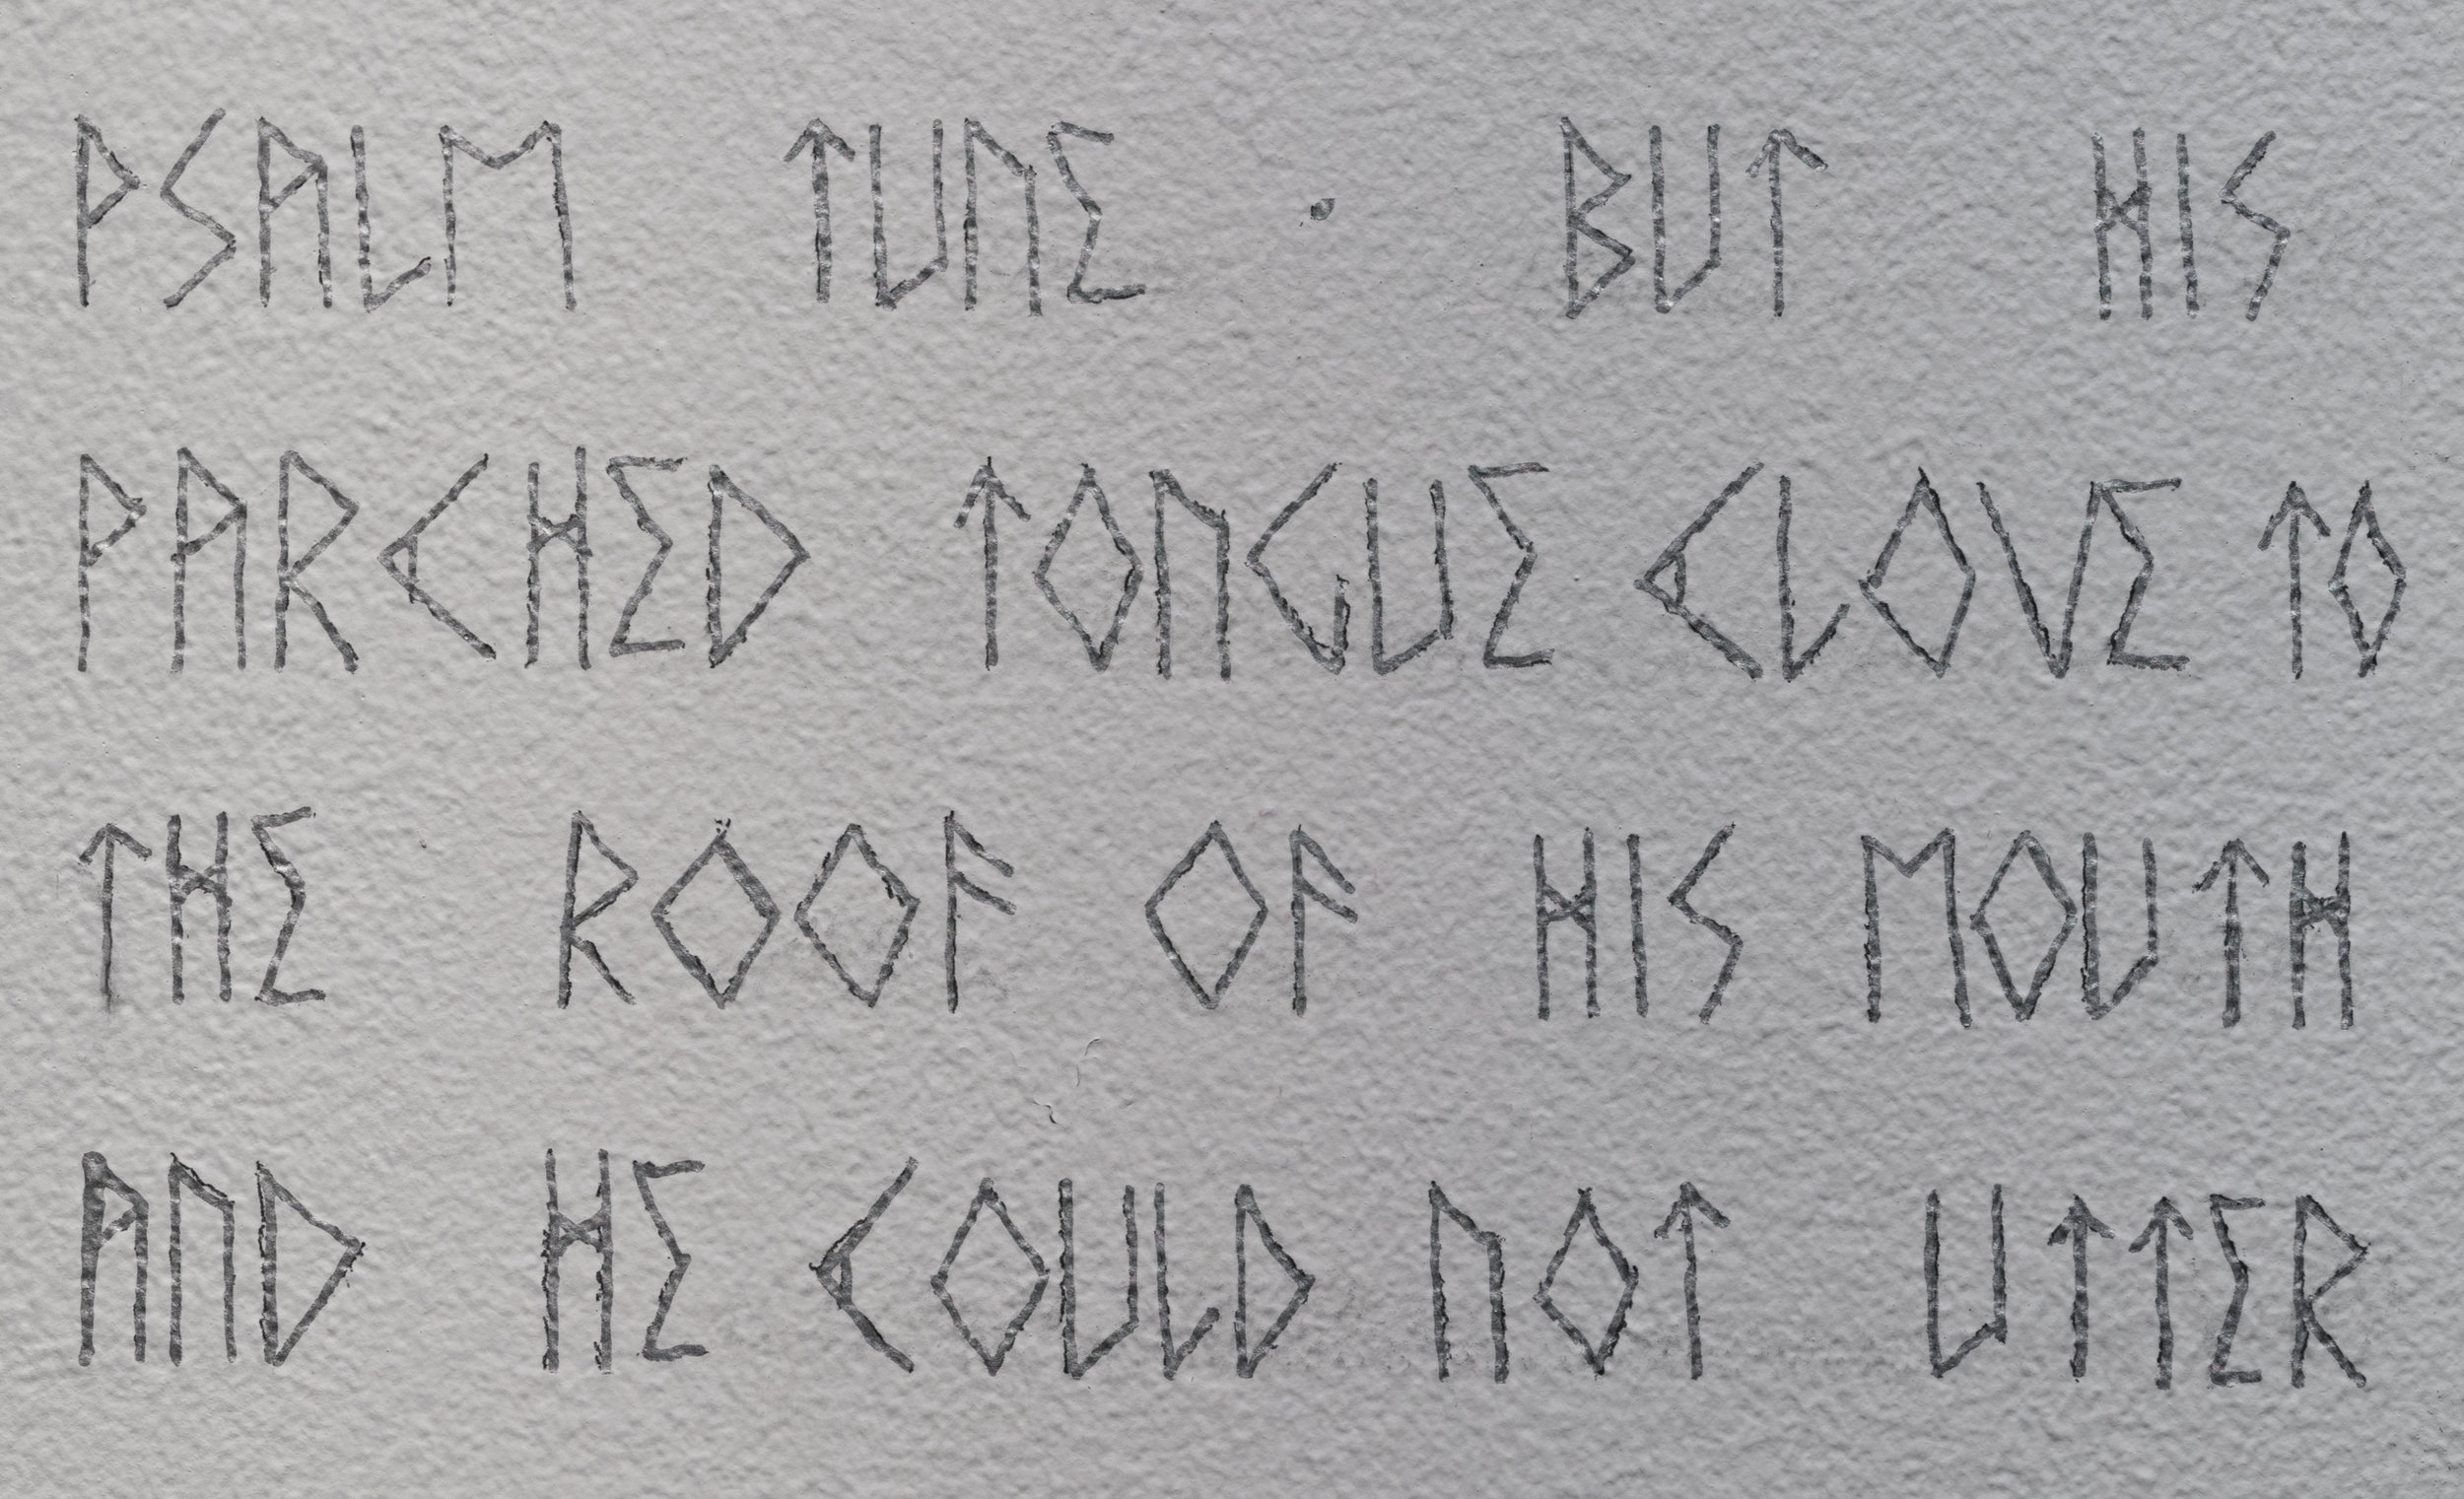 Wall text in artist typeface (detail)